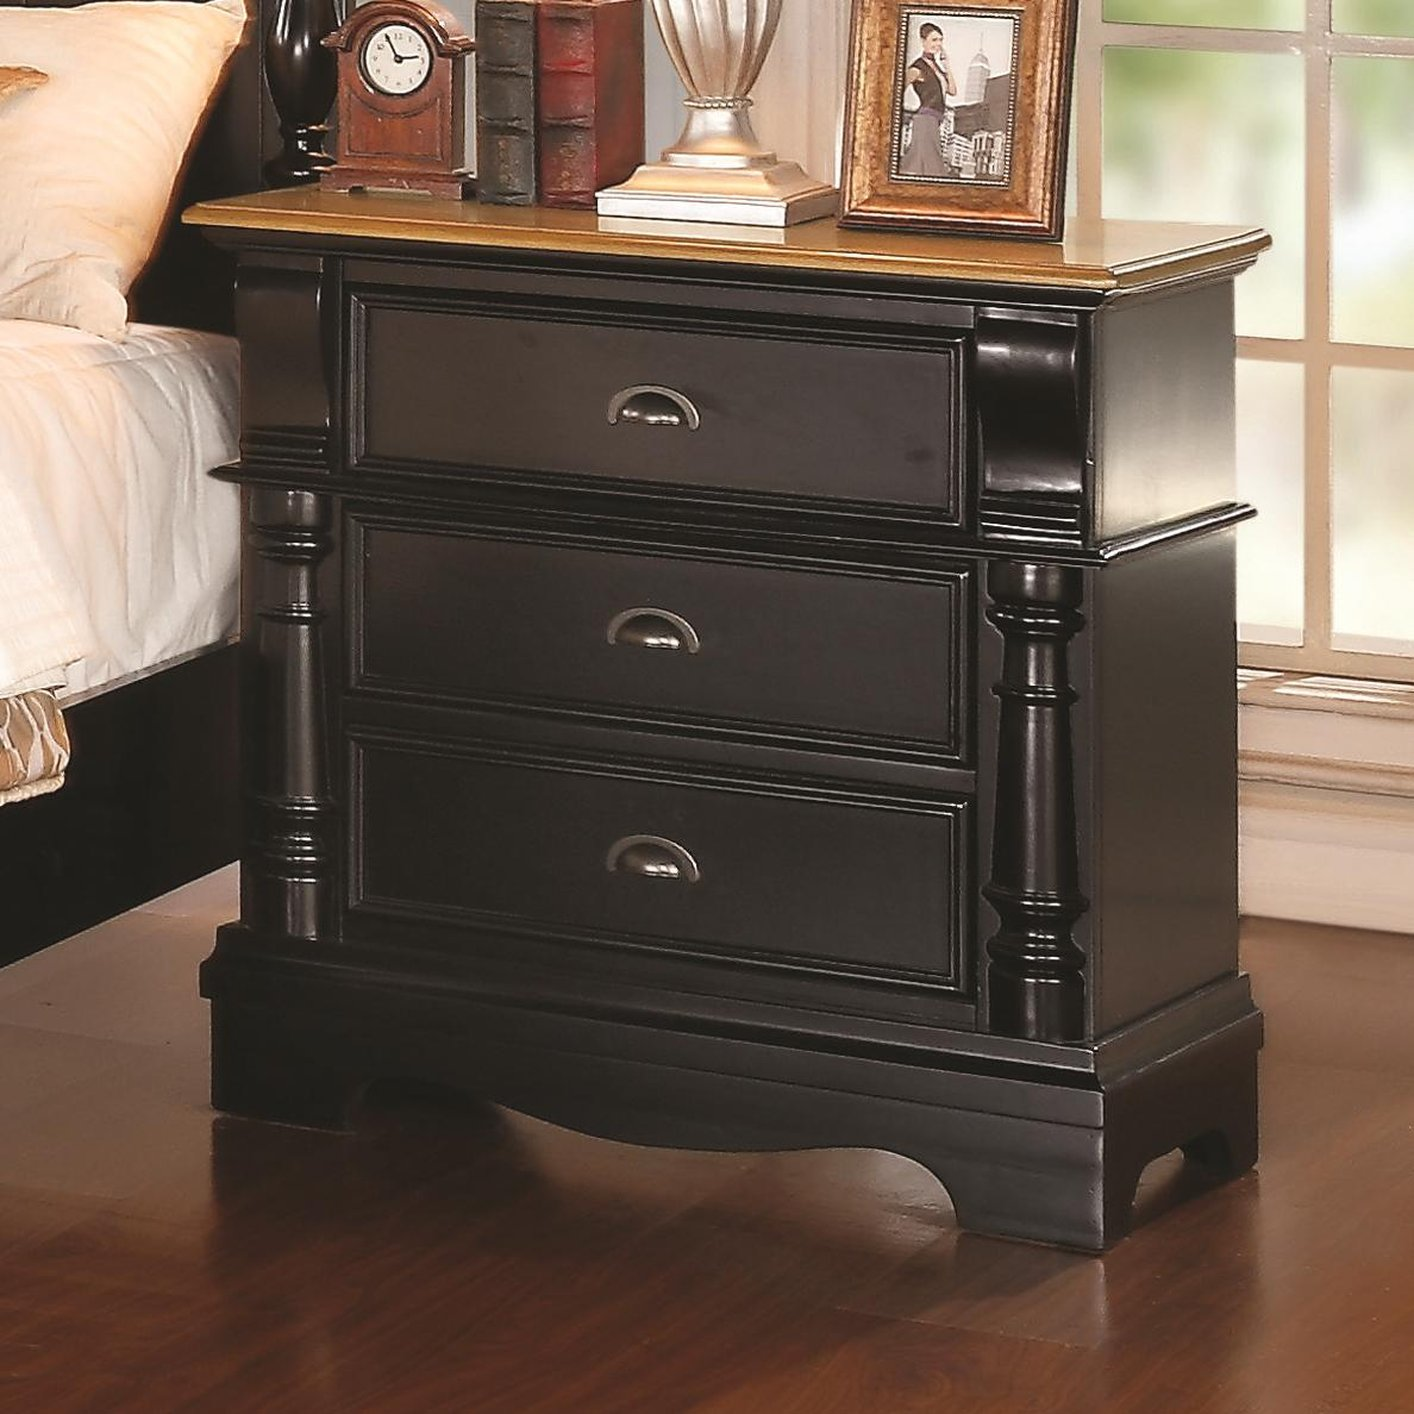 Coaster 203182 black wood nightstand steal a sofa for Black wood nightstand